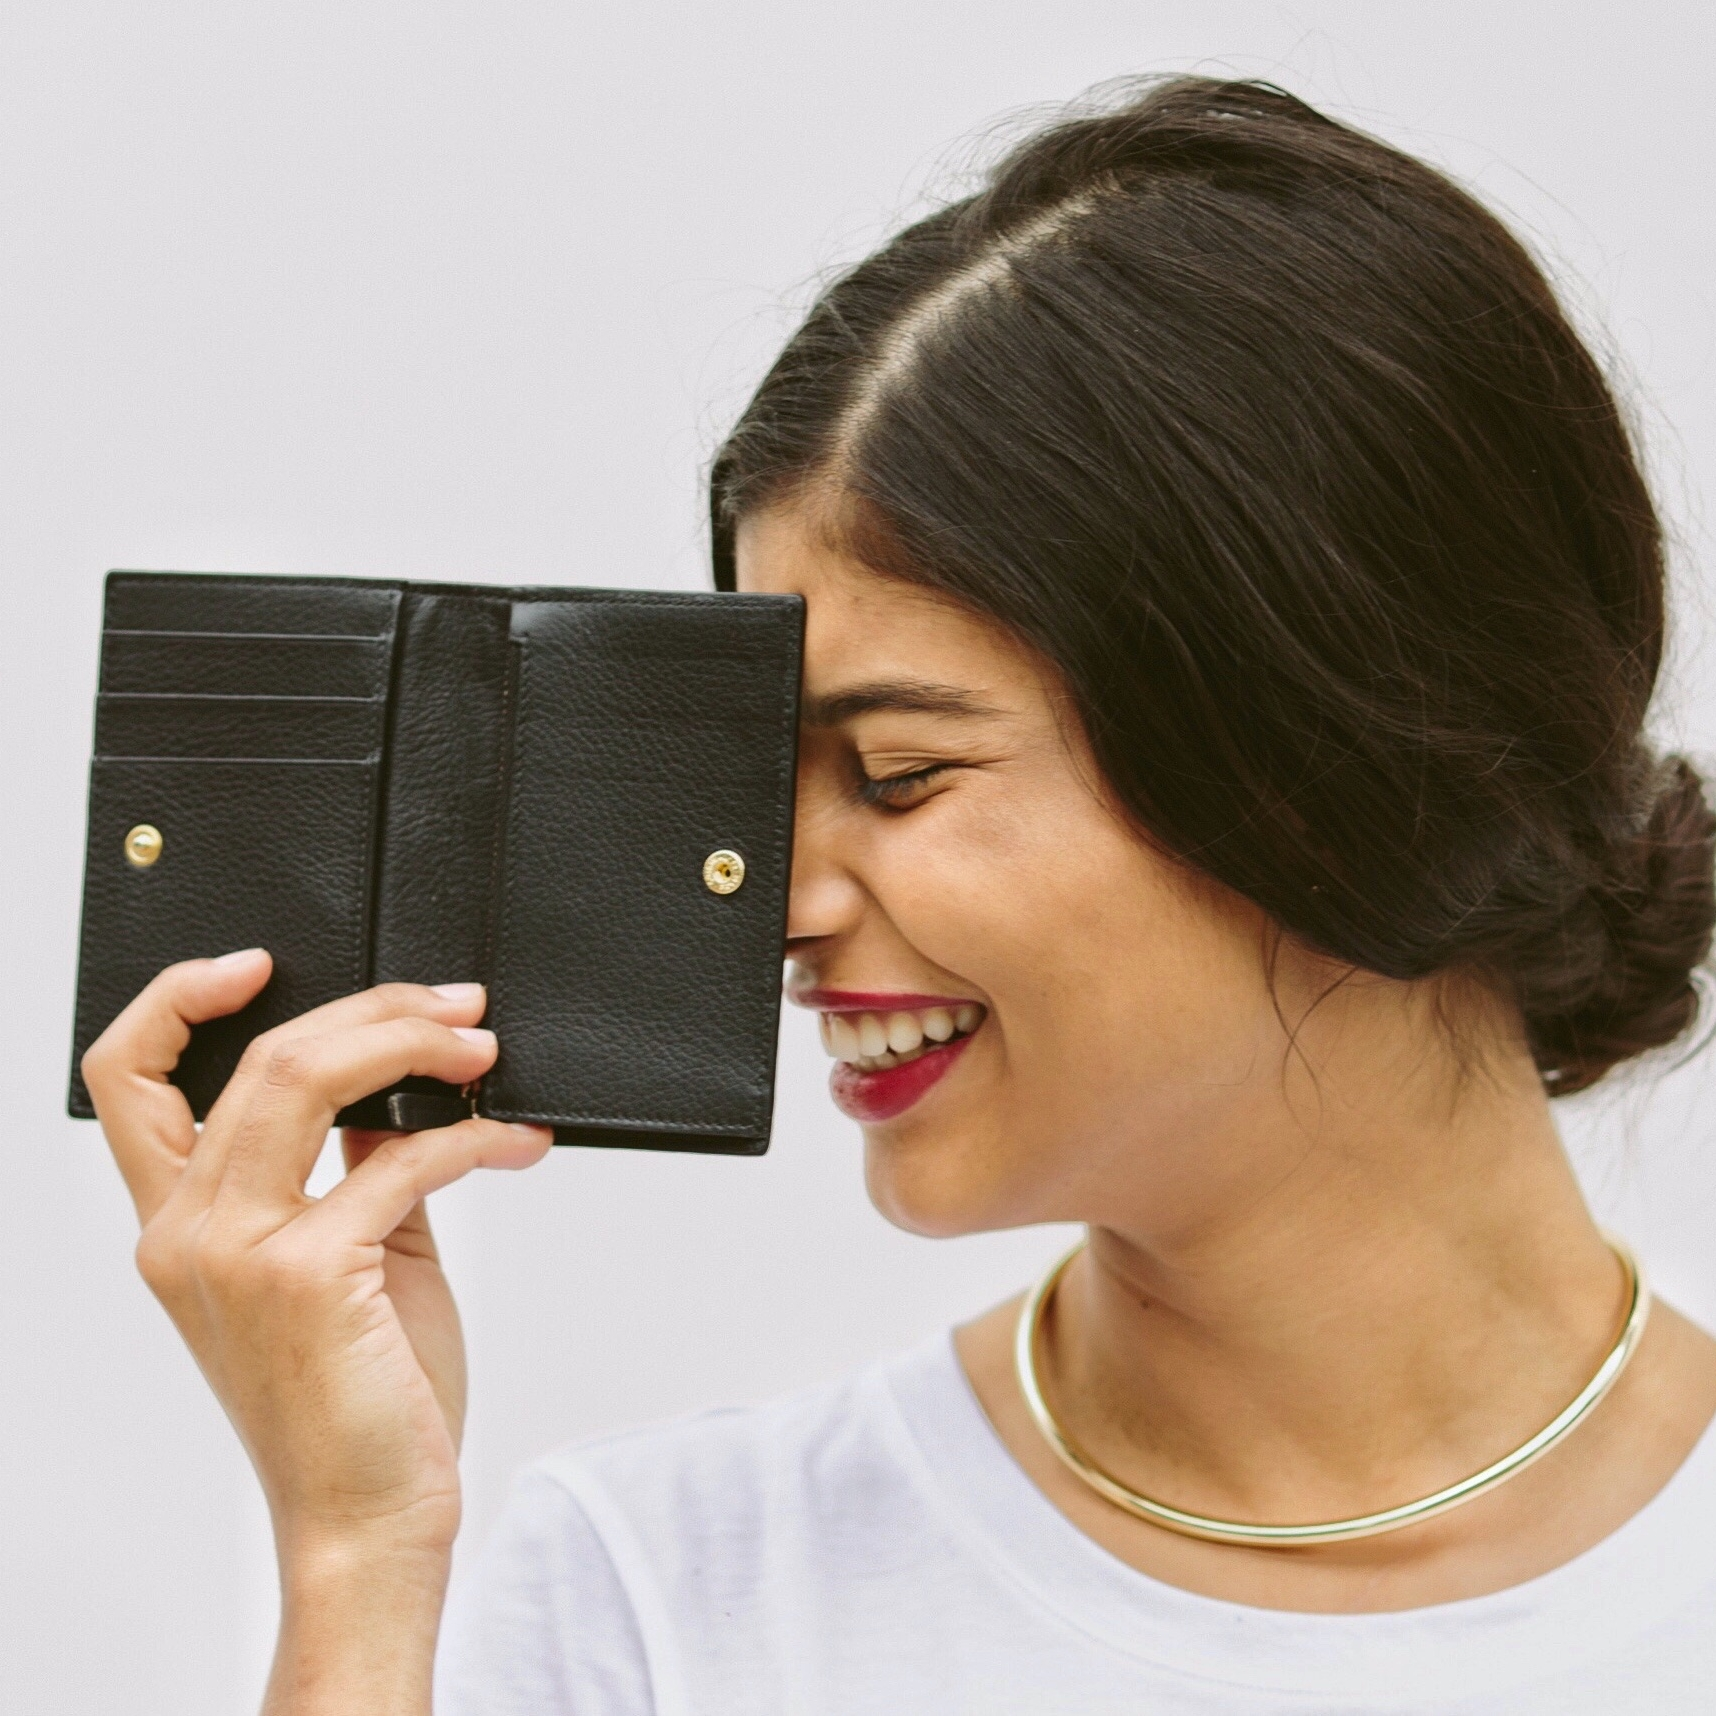 SIMPLE WALLET | $110 - Inspired by a man's wallet,Velé has added some femme & functionality to the classic bi-fold. Handcrafted in Spain, this wallet is made consciously from materials to manufacturing. (Take 20% off with code SELFLESSLYSTYLED20)